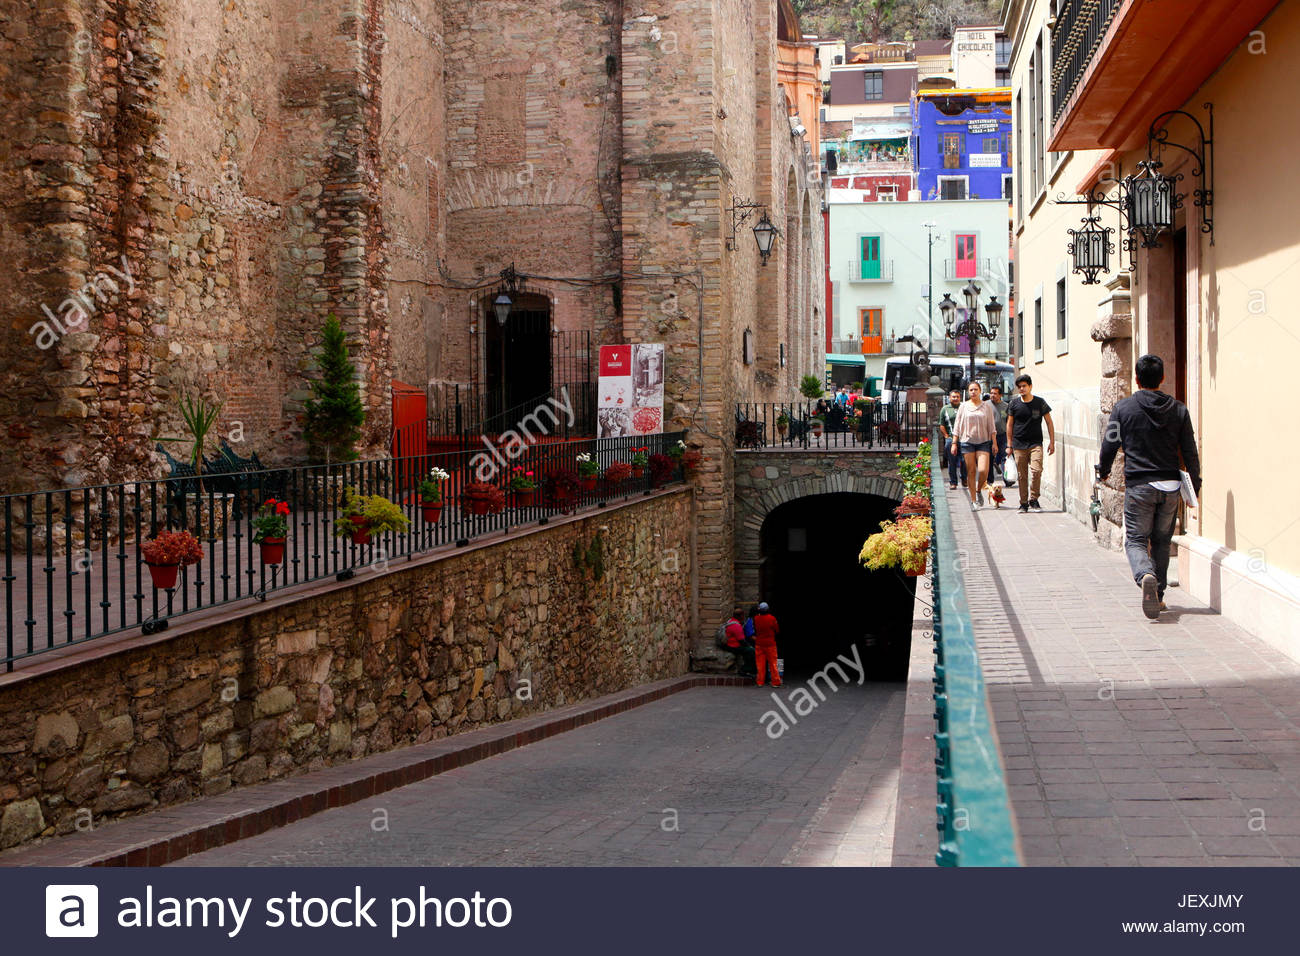 An entrance to one of many tunnels used for vehicular traffic, leaving the overground streets for pedestrians. - Stock Image